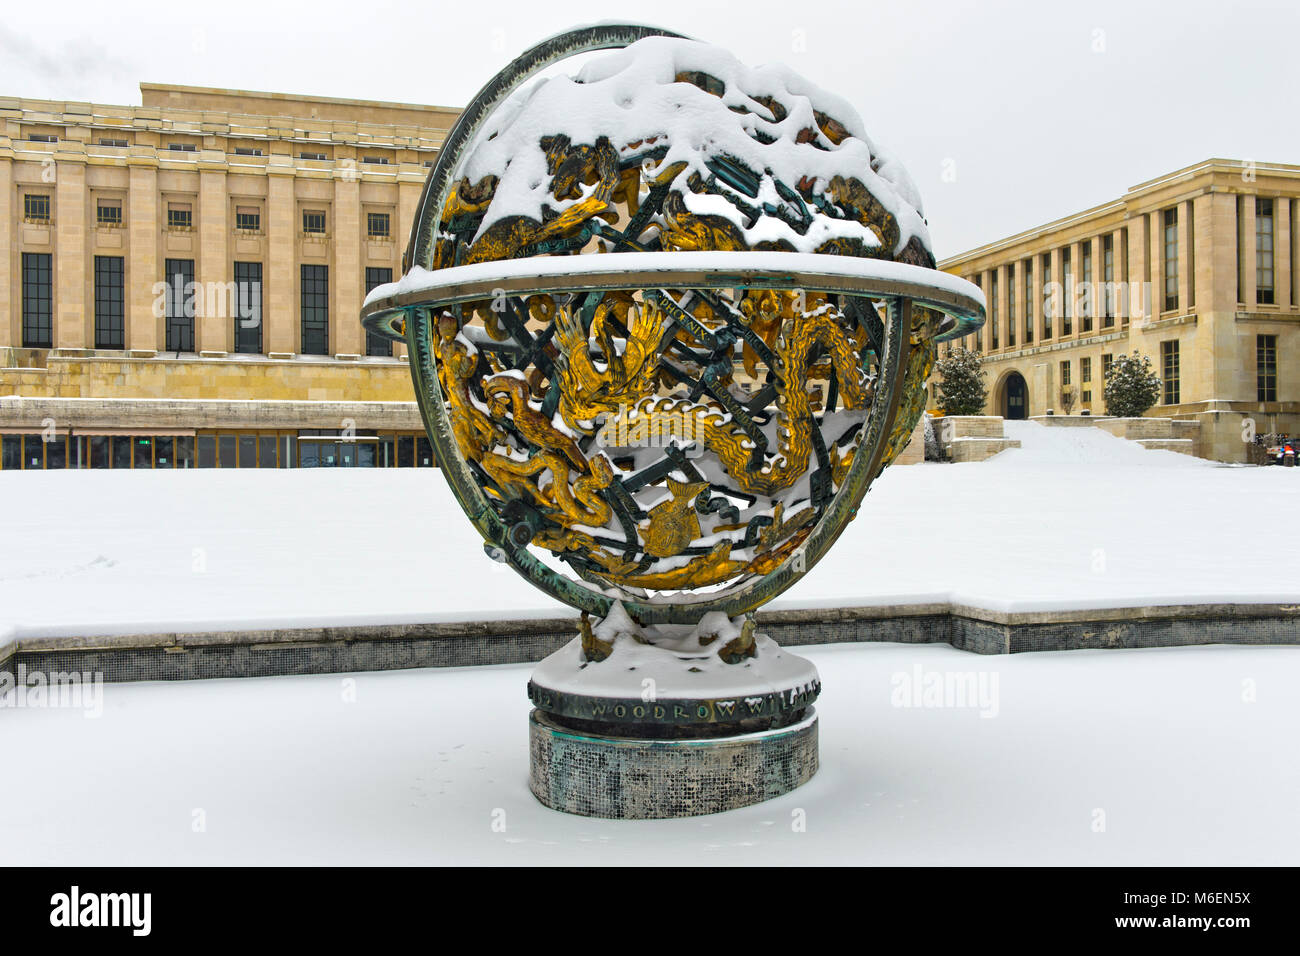 Celestial Sphere Woodrow Wilson Memorial, Palais des Nations, United Nations, at winter time, Geneva, Switzerland - Stock Image